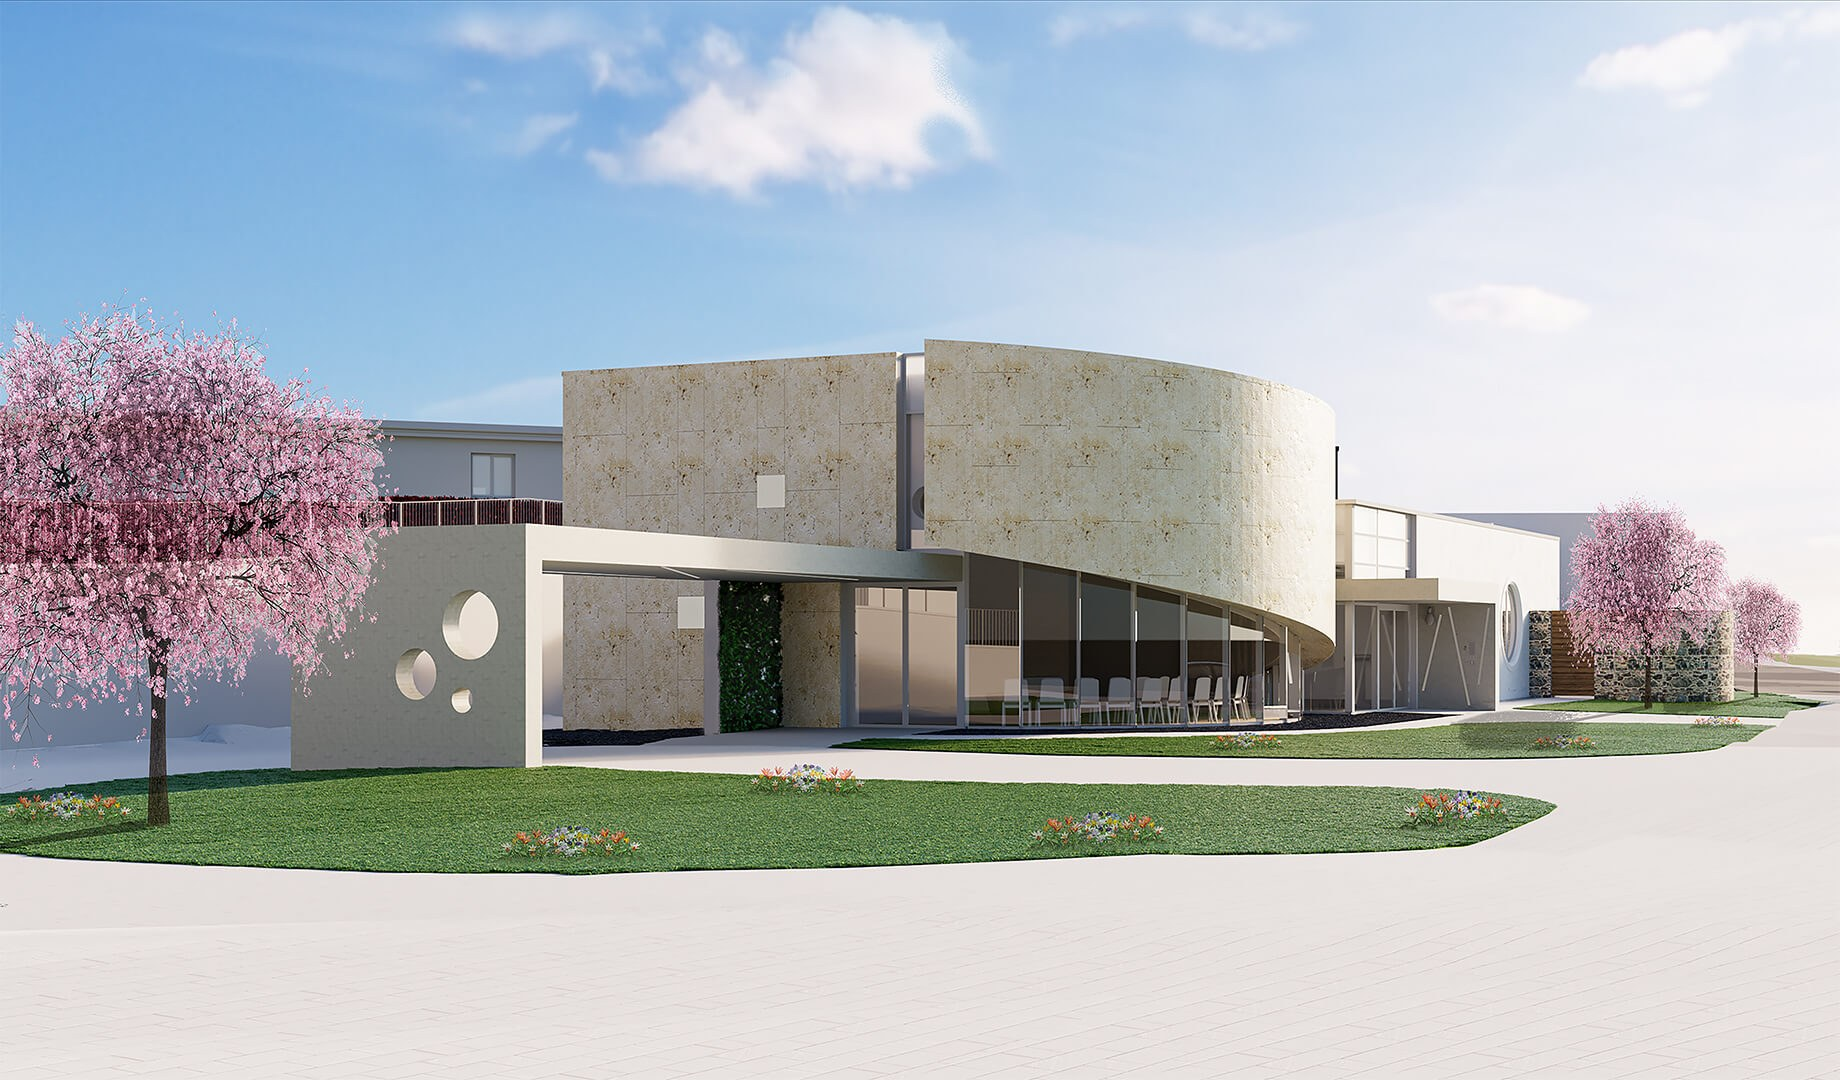 Health Social Care Cjfa Architecture Wuh Mortuary Ardkeen Waterford 2020 1